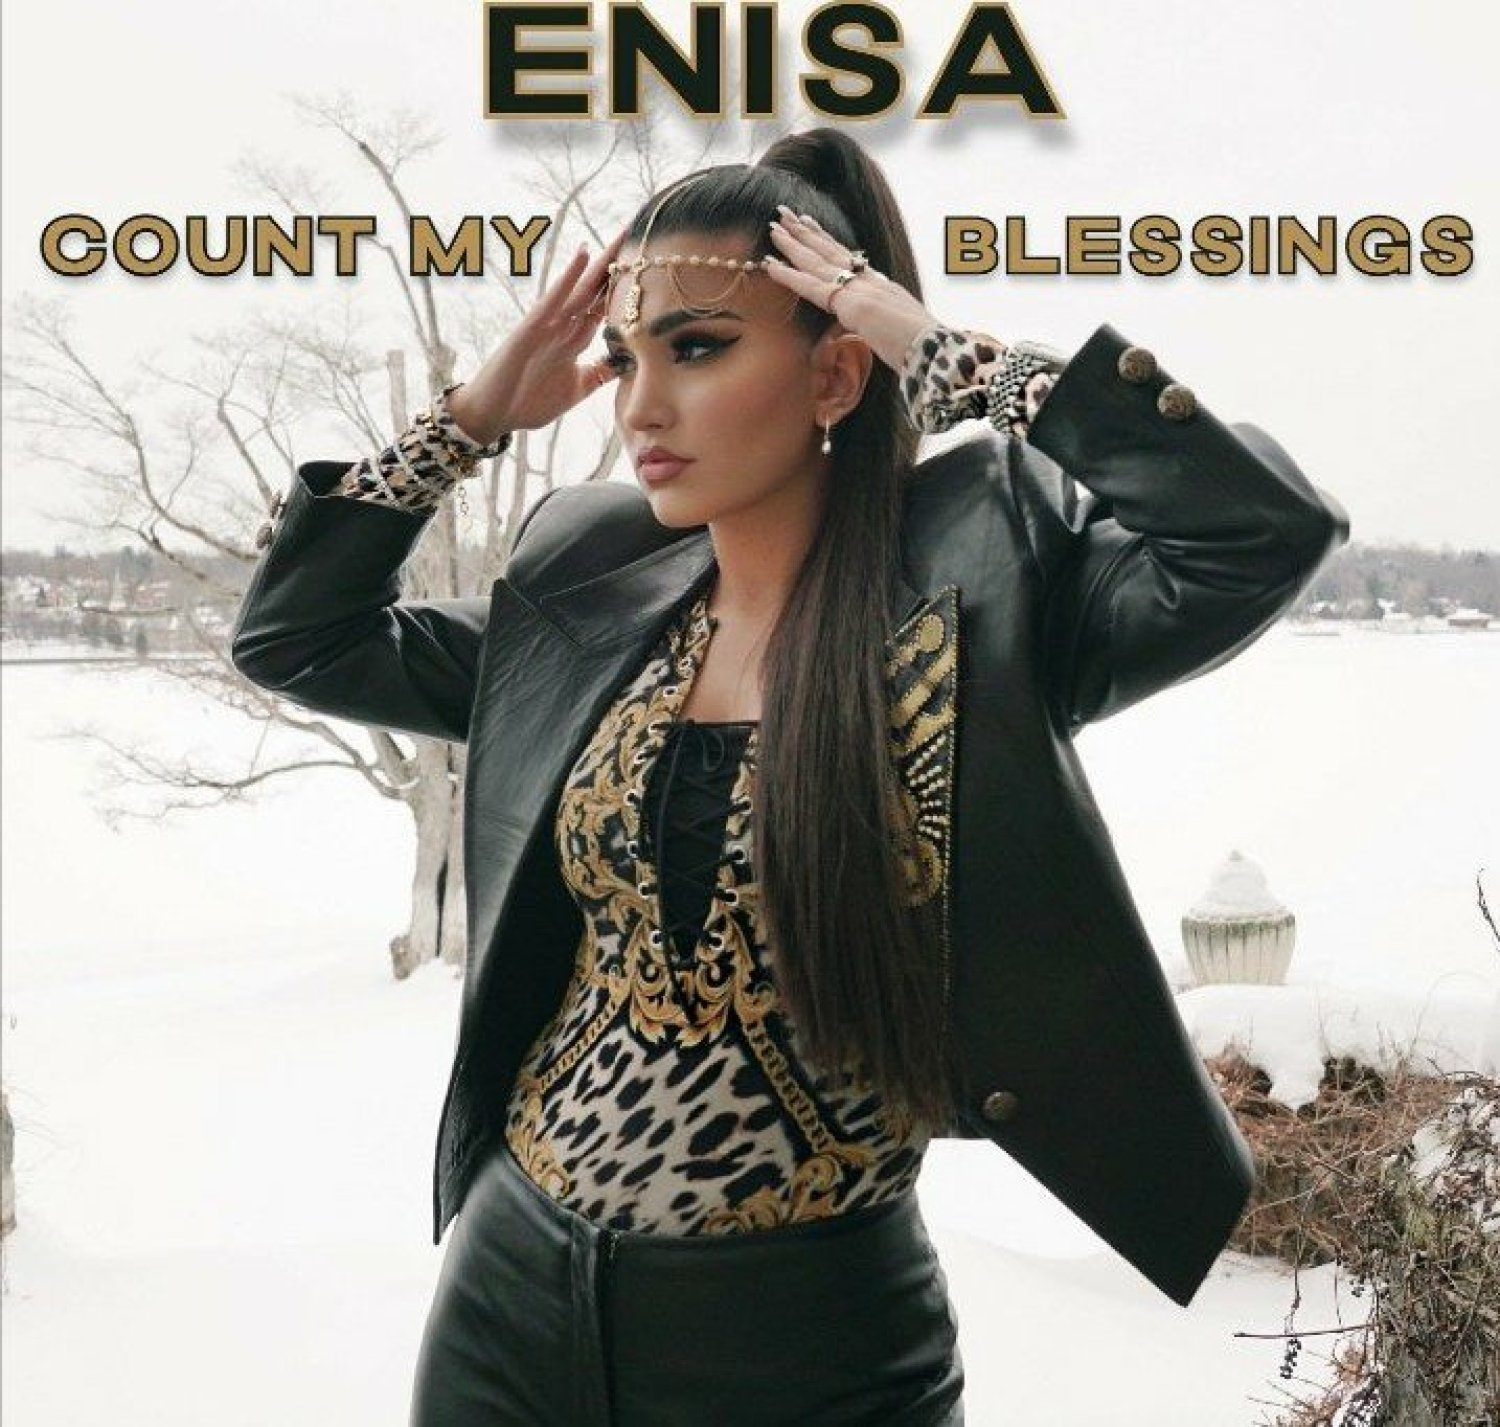 DOWNLOAD MP3: Enisa – Count My Blessings (Free MP3)AUDIO 320kbps